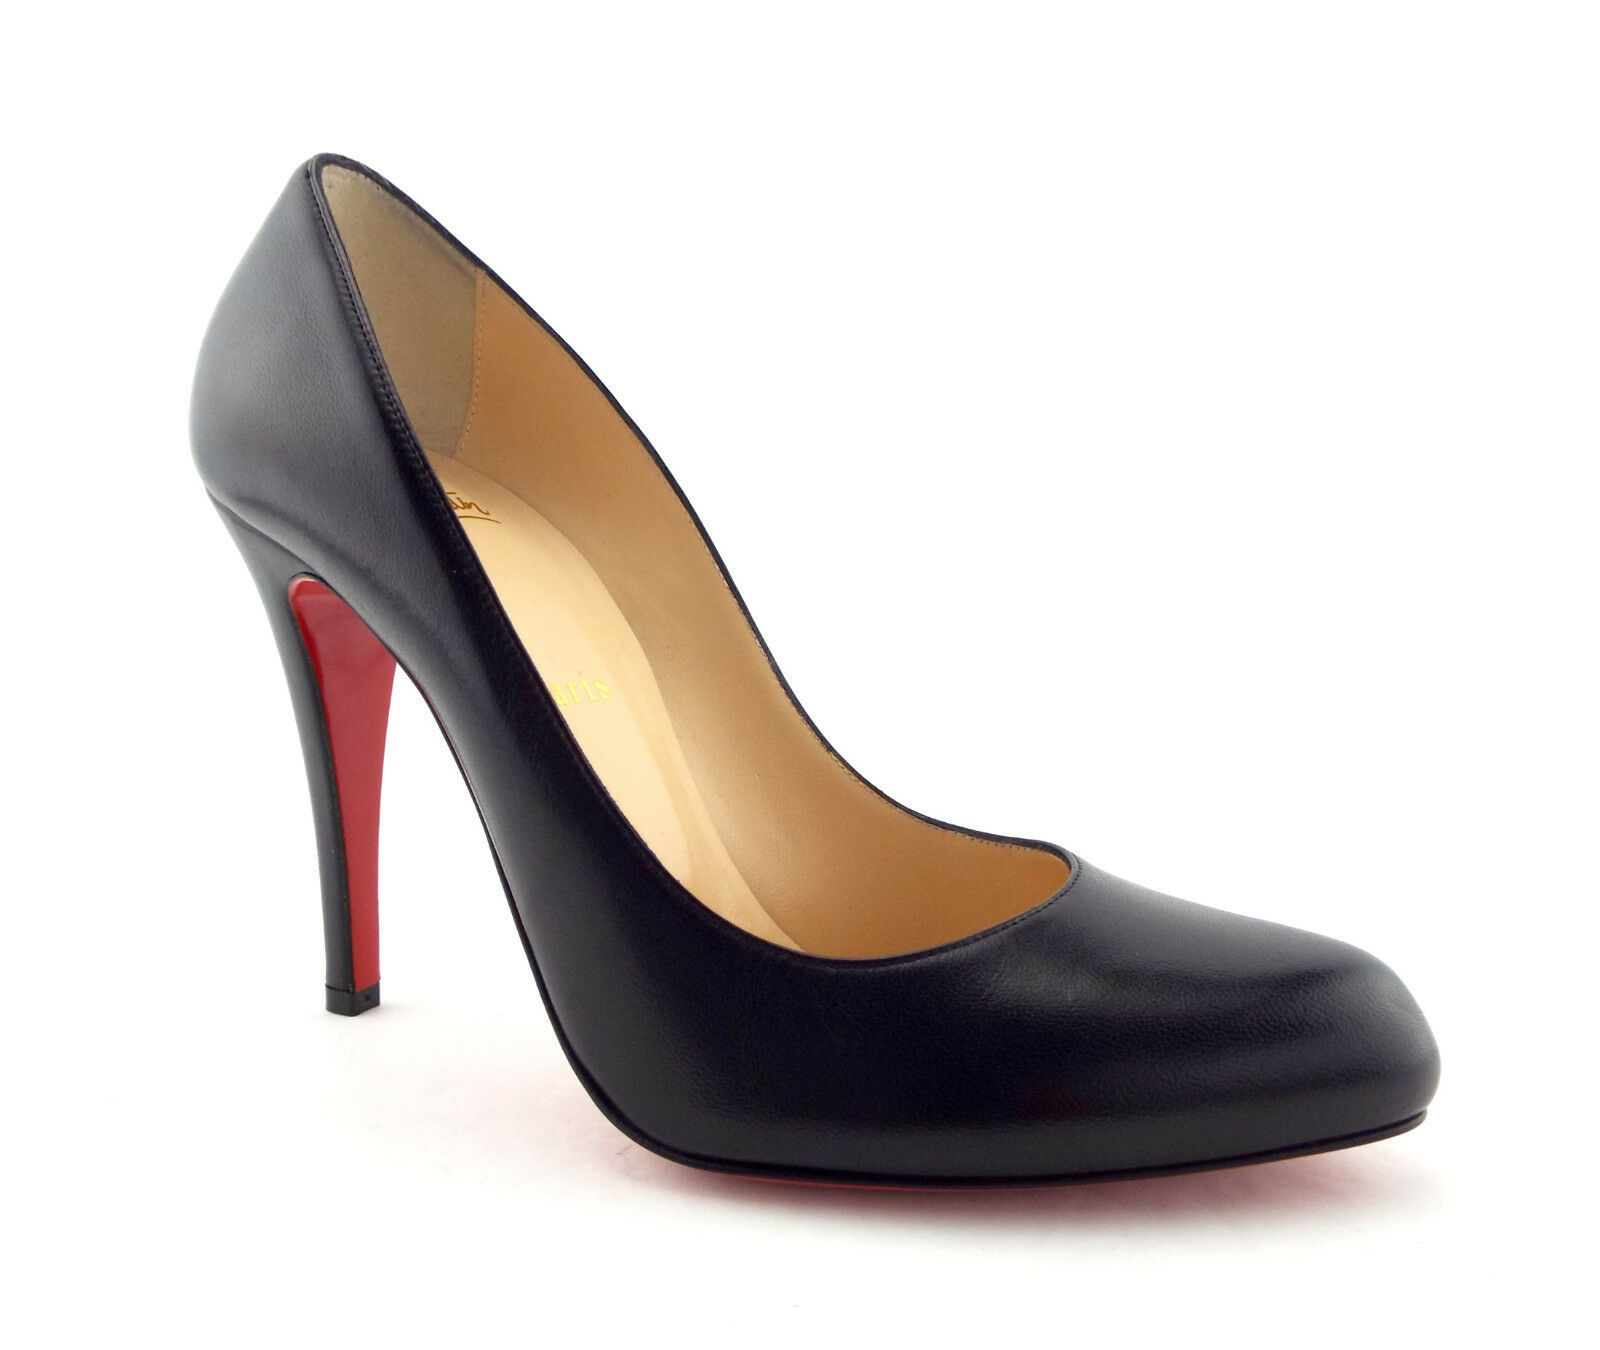 b1e395aeb51 New Christian Louboutin Size 8.5 Decollete and 50 similar items. S l1600